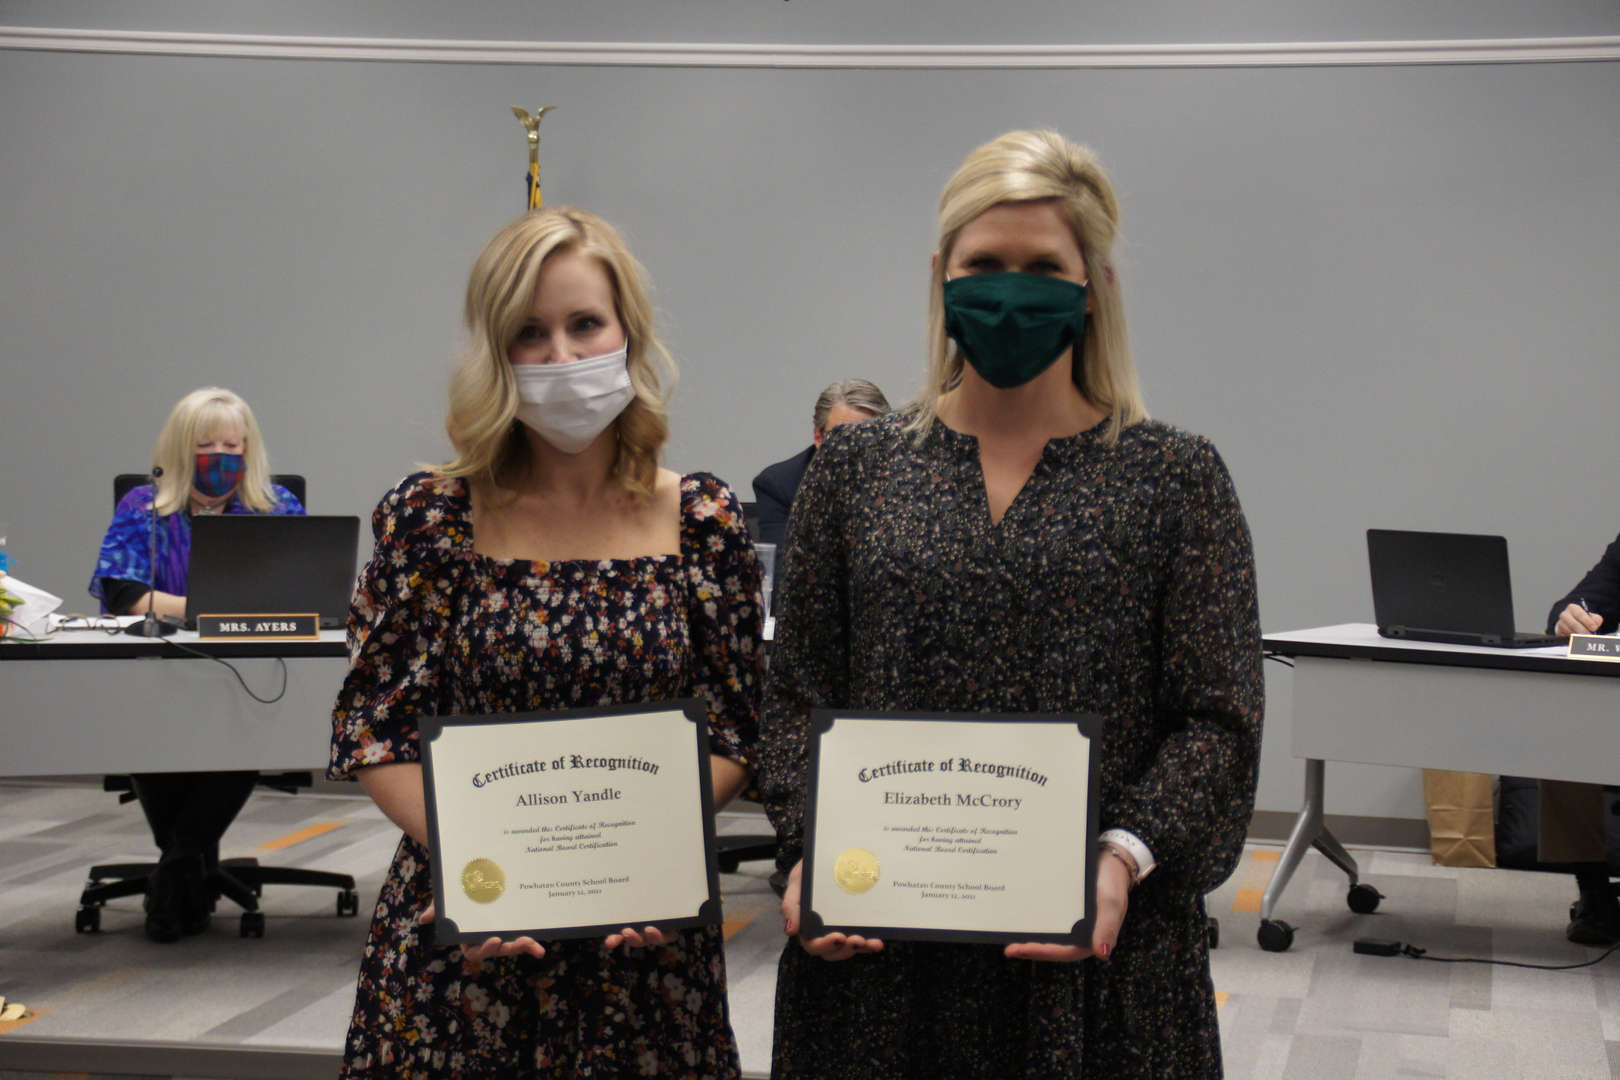 Allison Yandle & Elizabeth McCrory recognized for national board certification